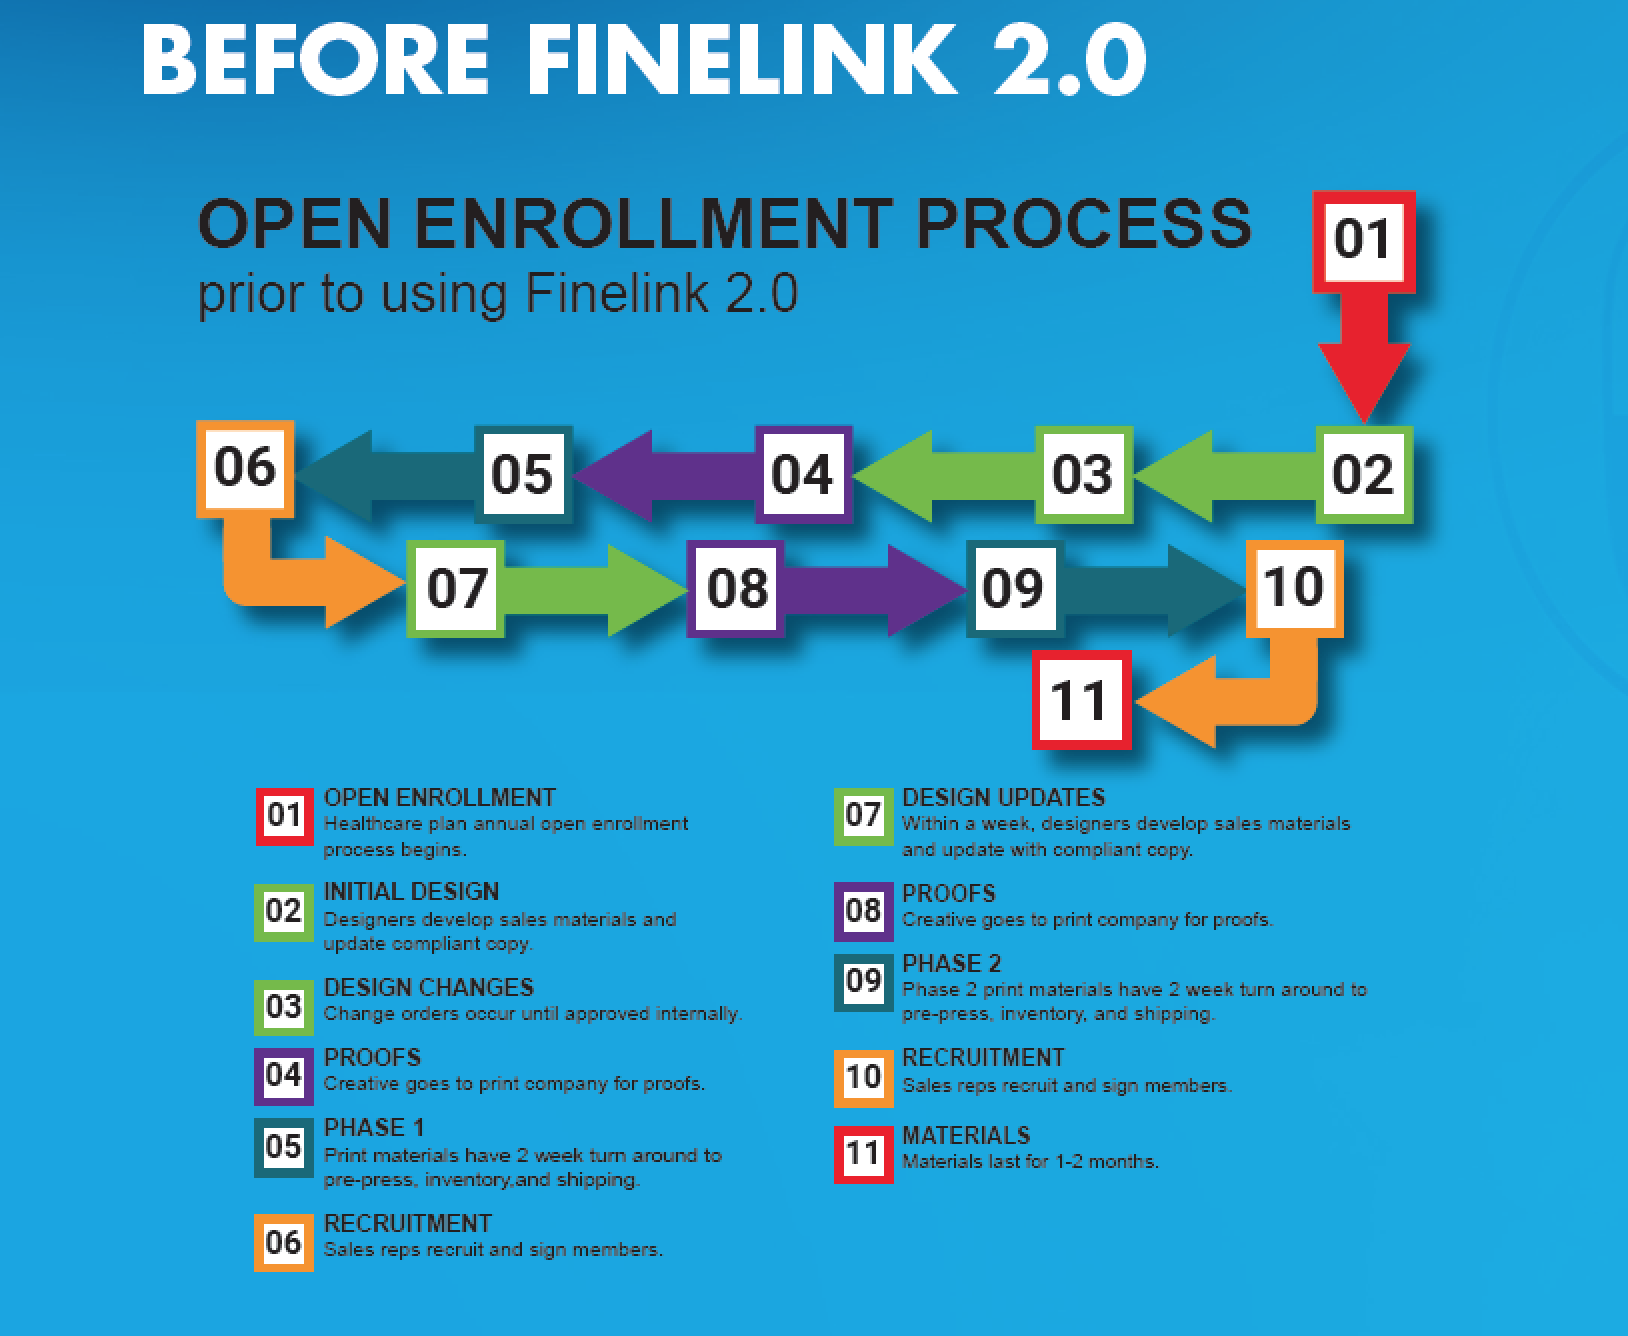 Speed Healthcare Member Enrollment before Finelink 2.0